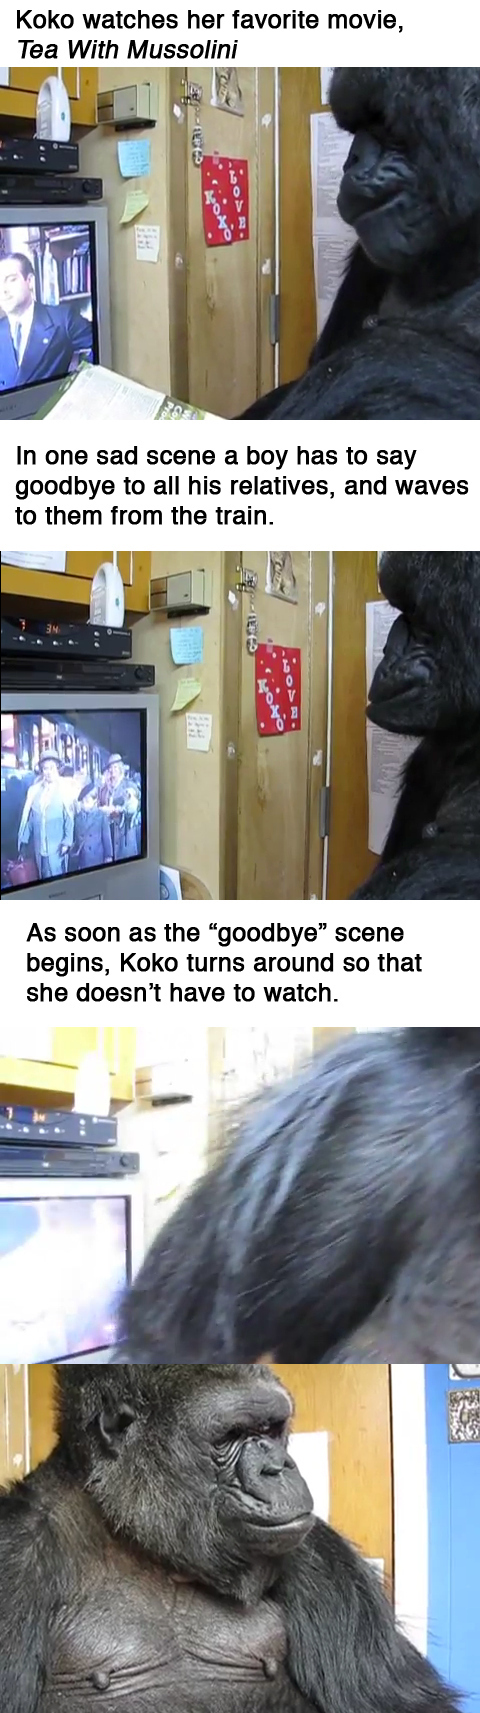 9. Koko the Gorilla watches her favorite movie and the result is a tear jerker.